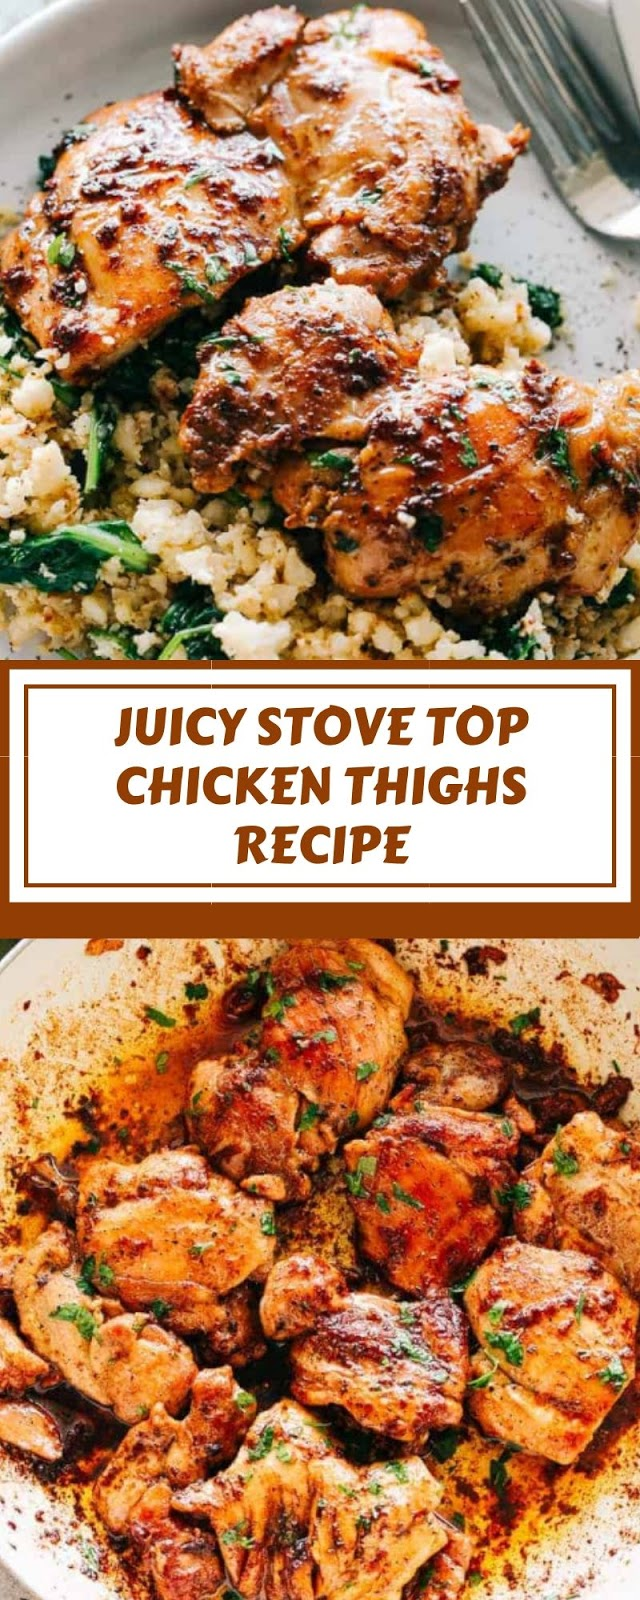 JUICY STOVE TOP CHICKEN THIGHS RECIPE